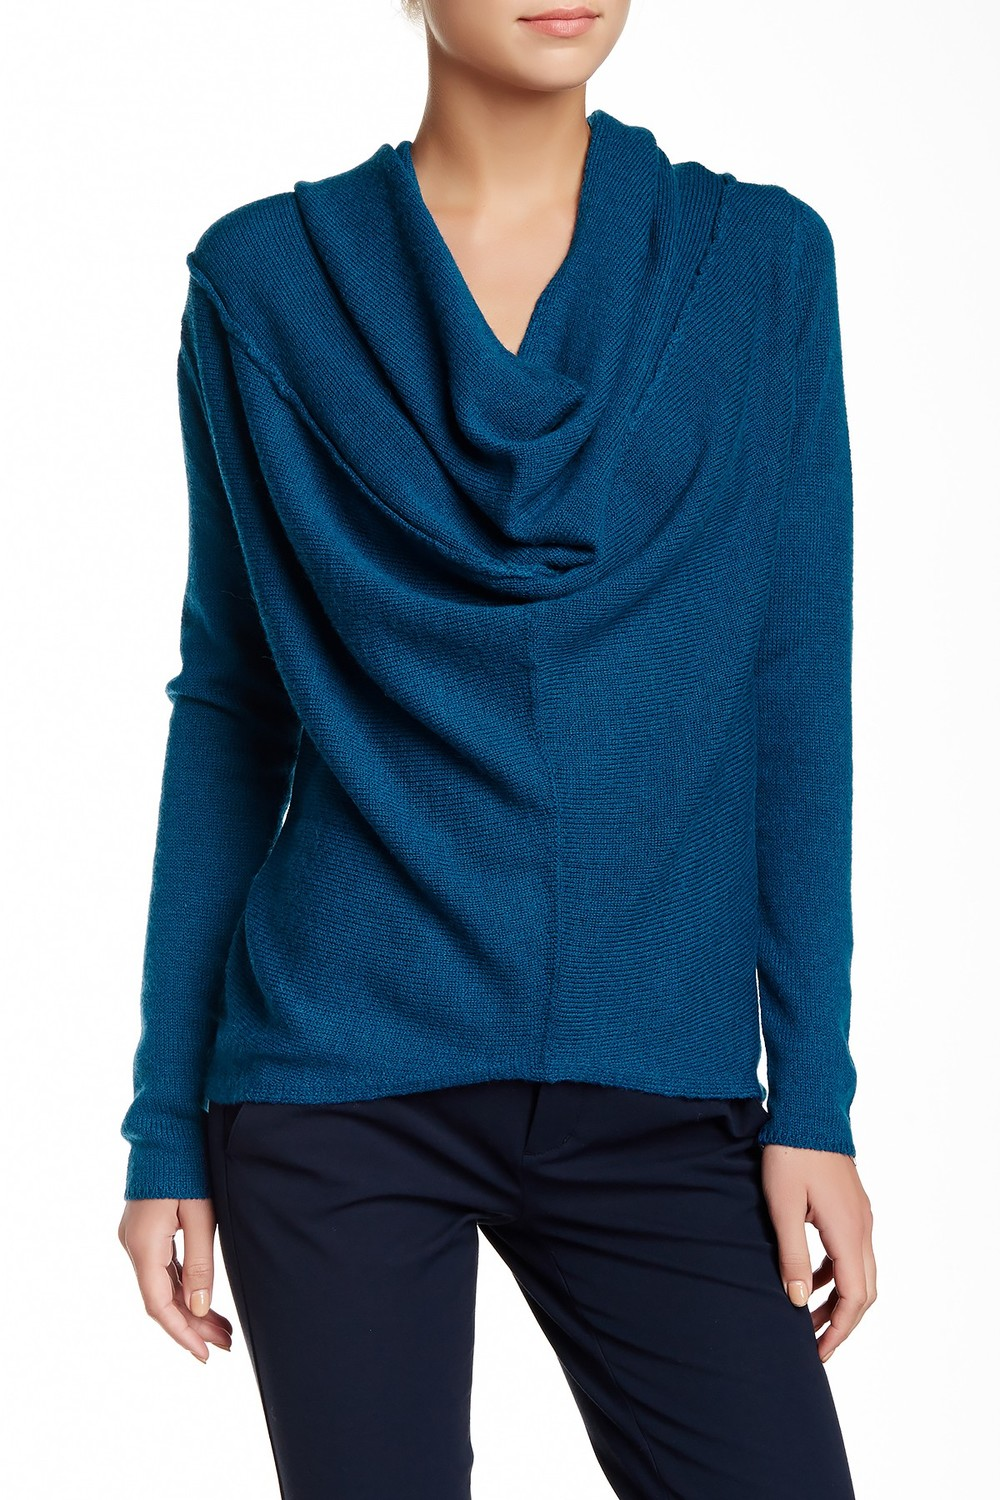 Vince Wool Blend Drape Front Sweater. Available in multiple colors. Nordstrom Rack. Was: $325 Now: $149.